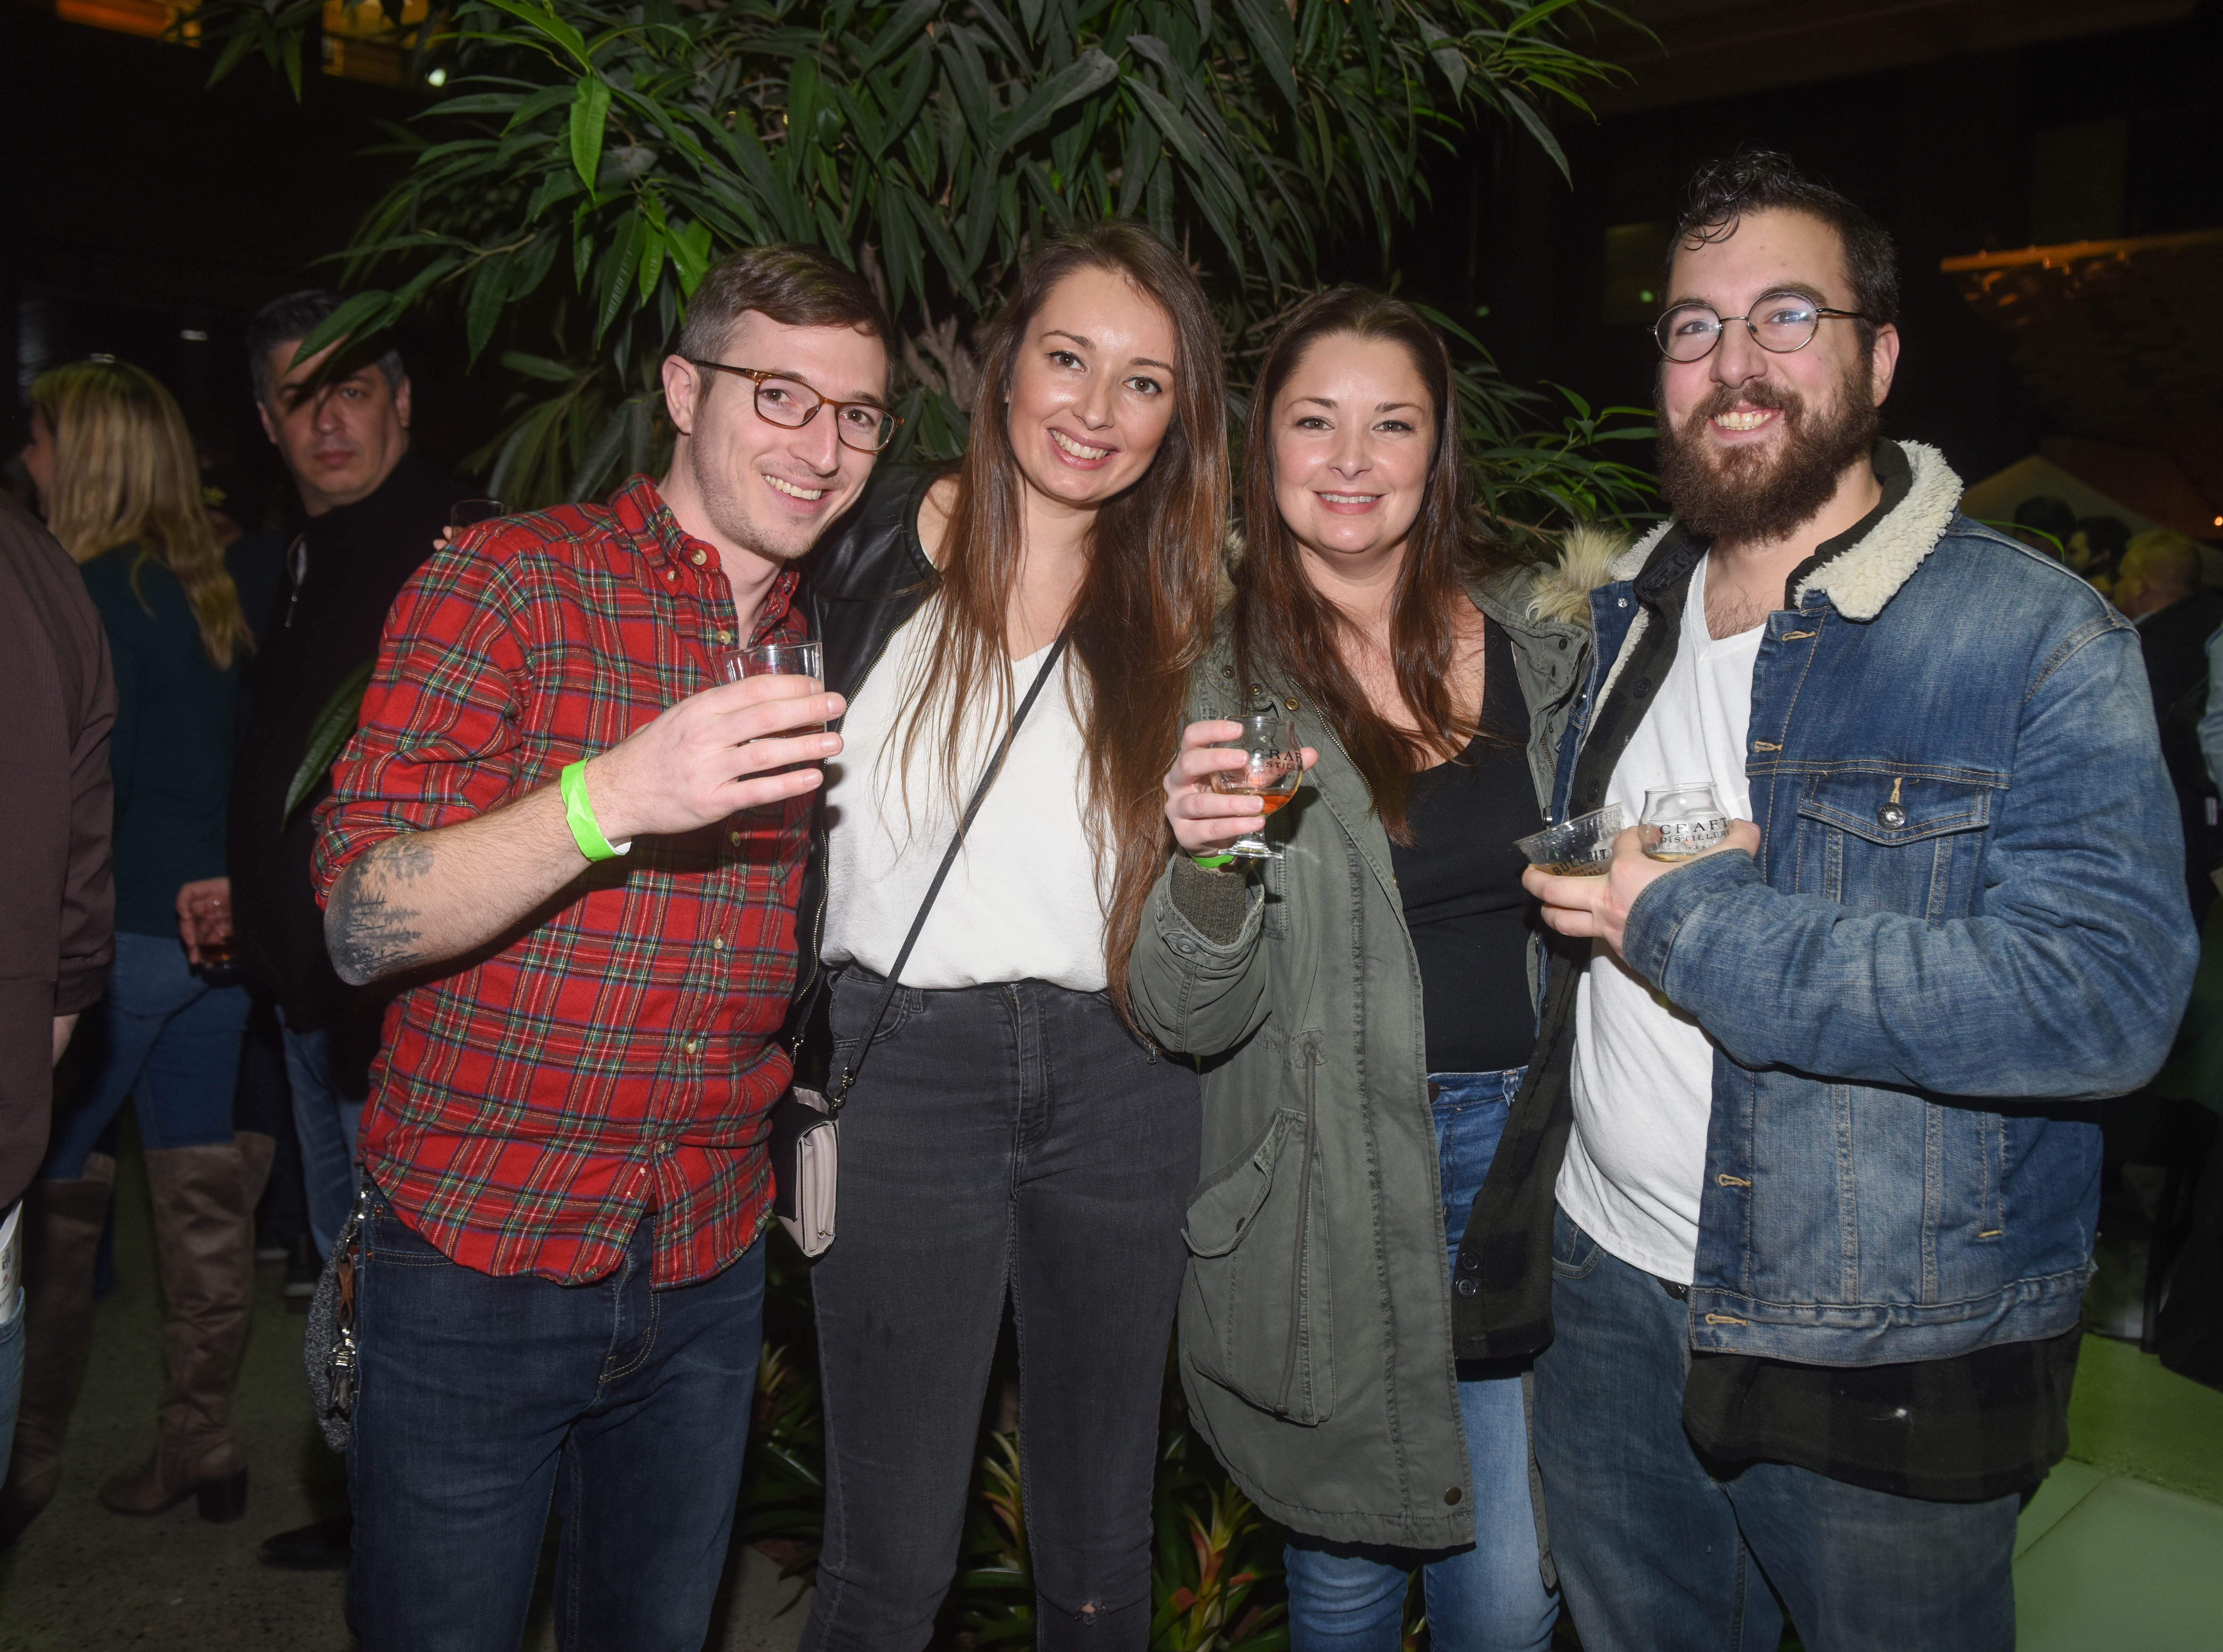 Eric, Sam, Lisa and Alex. Jersey City Whiskey Fest was held at Harborside Atrium. The event featured over 100 styles of whiskey and spirits. 02/01/2019